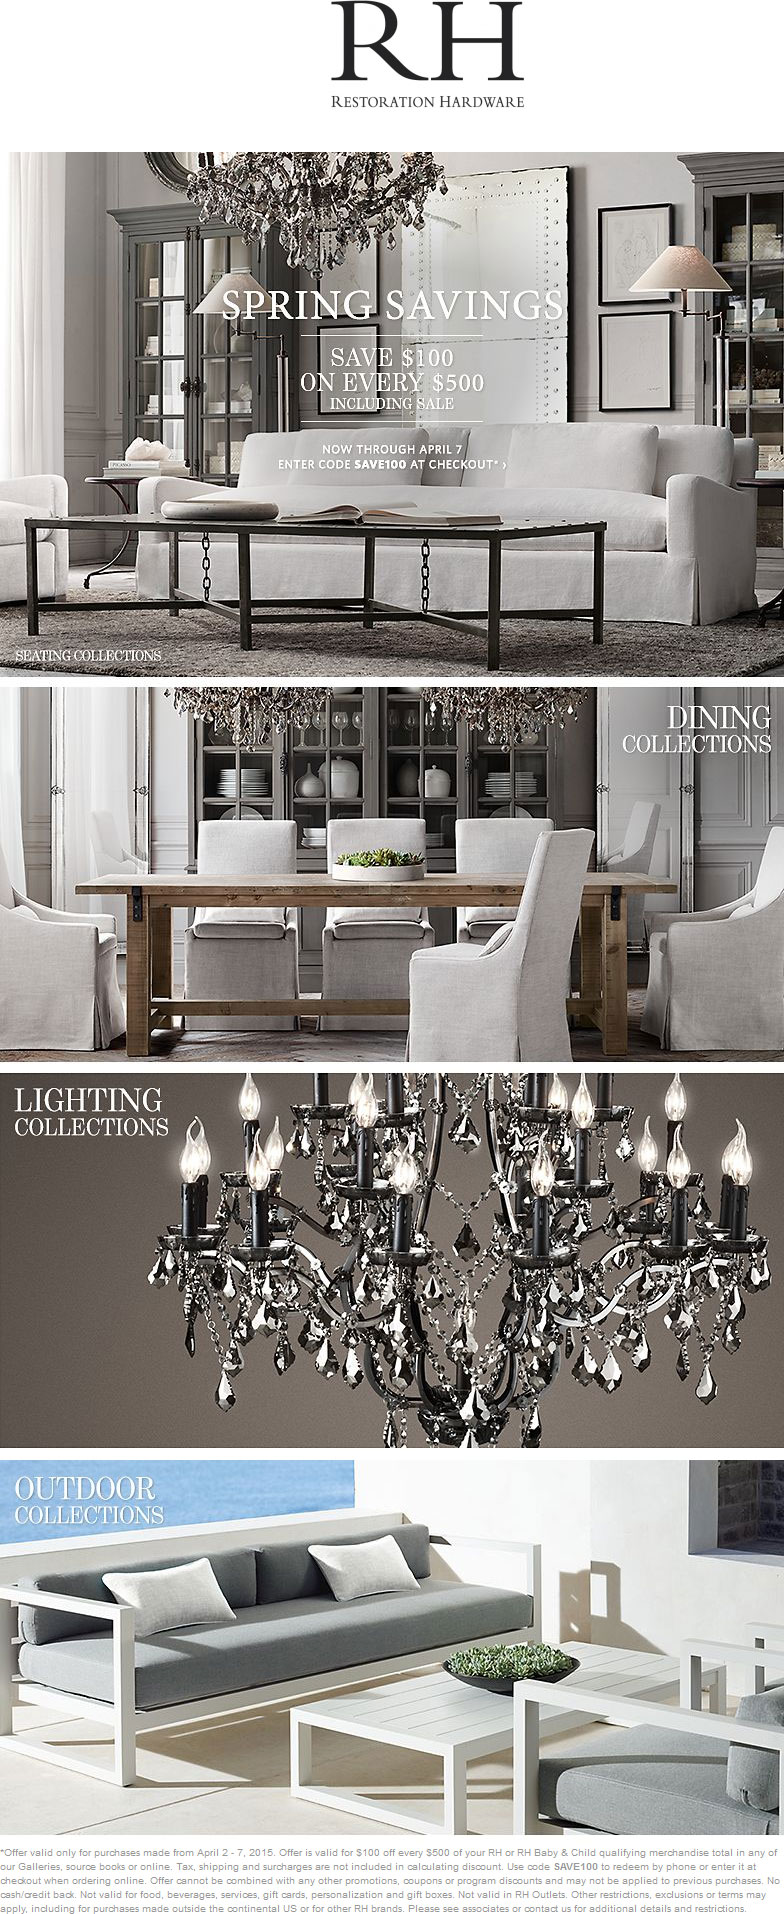 Restoration Hardware Coupon January 2017 $100 off every $500 at Restoration Hardware, or online via promo code SAVE100